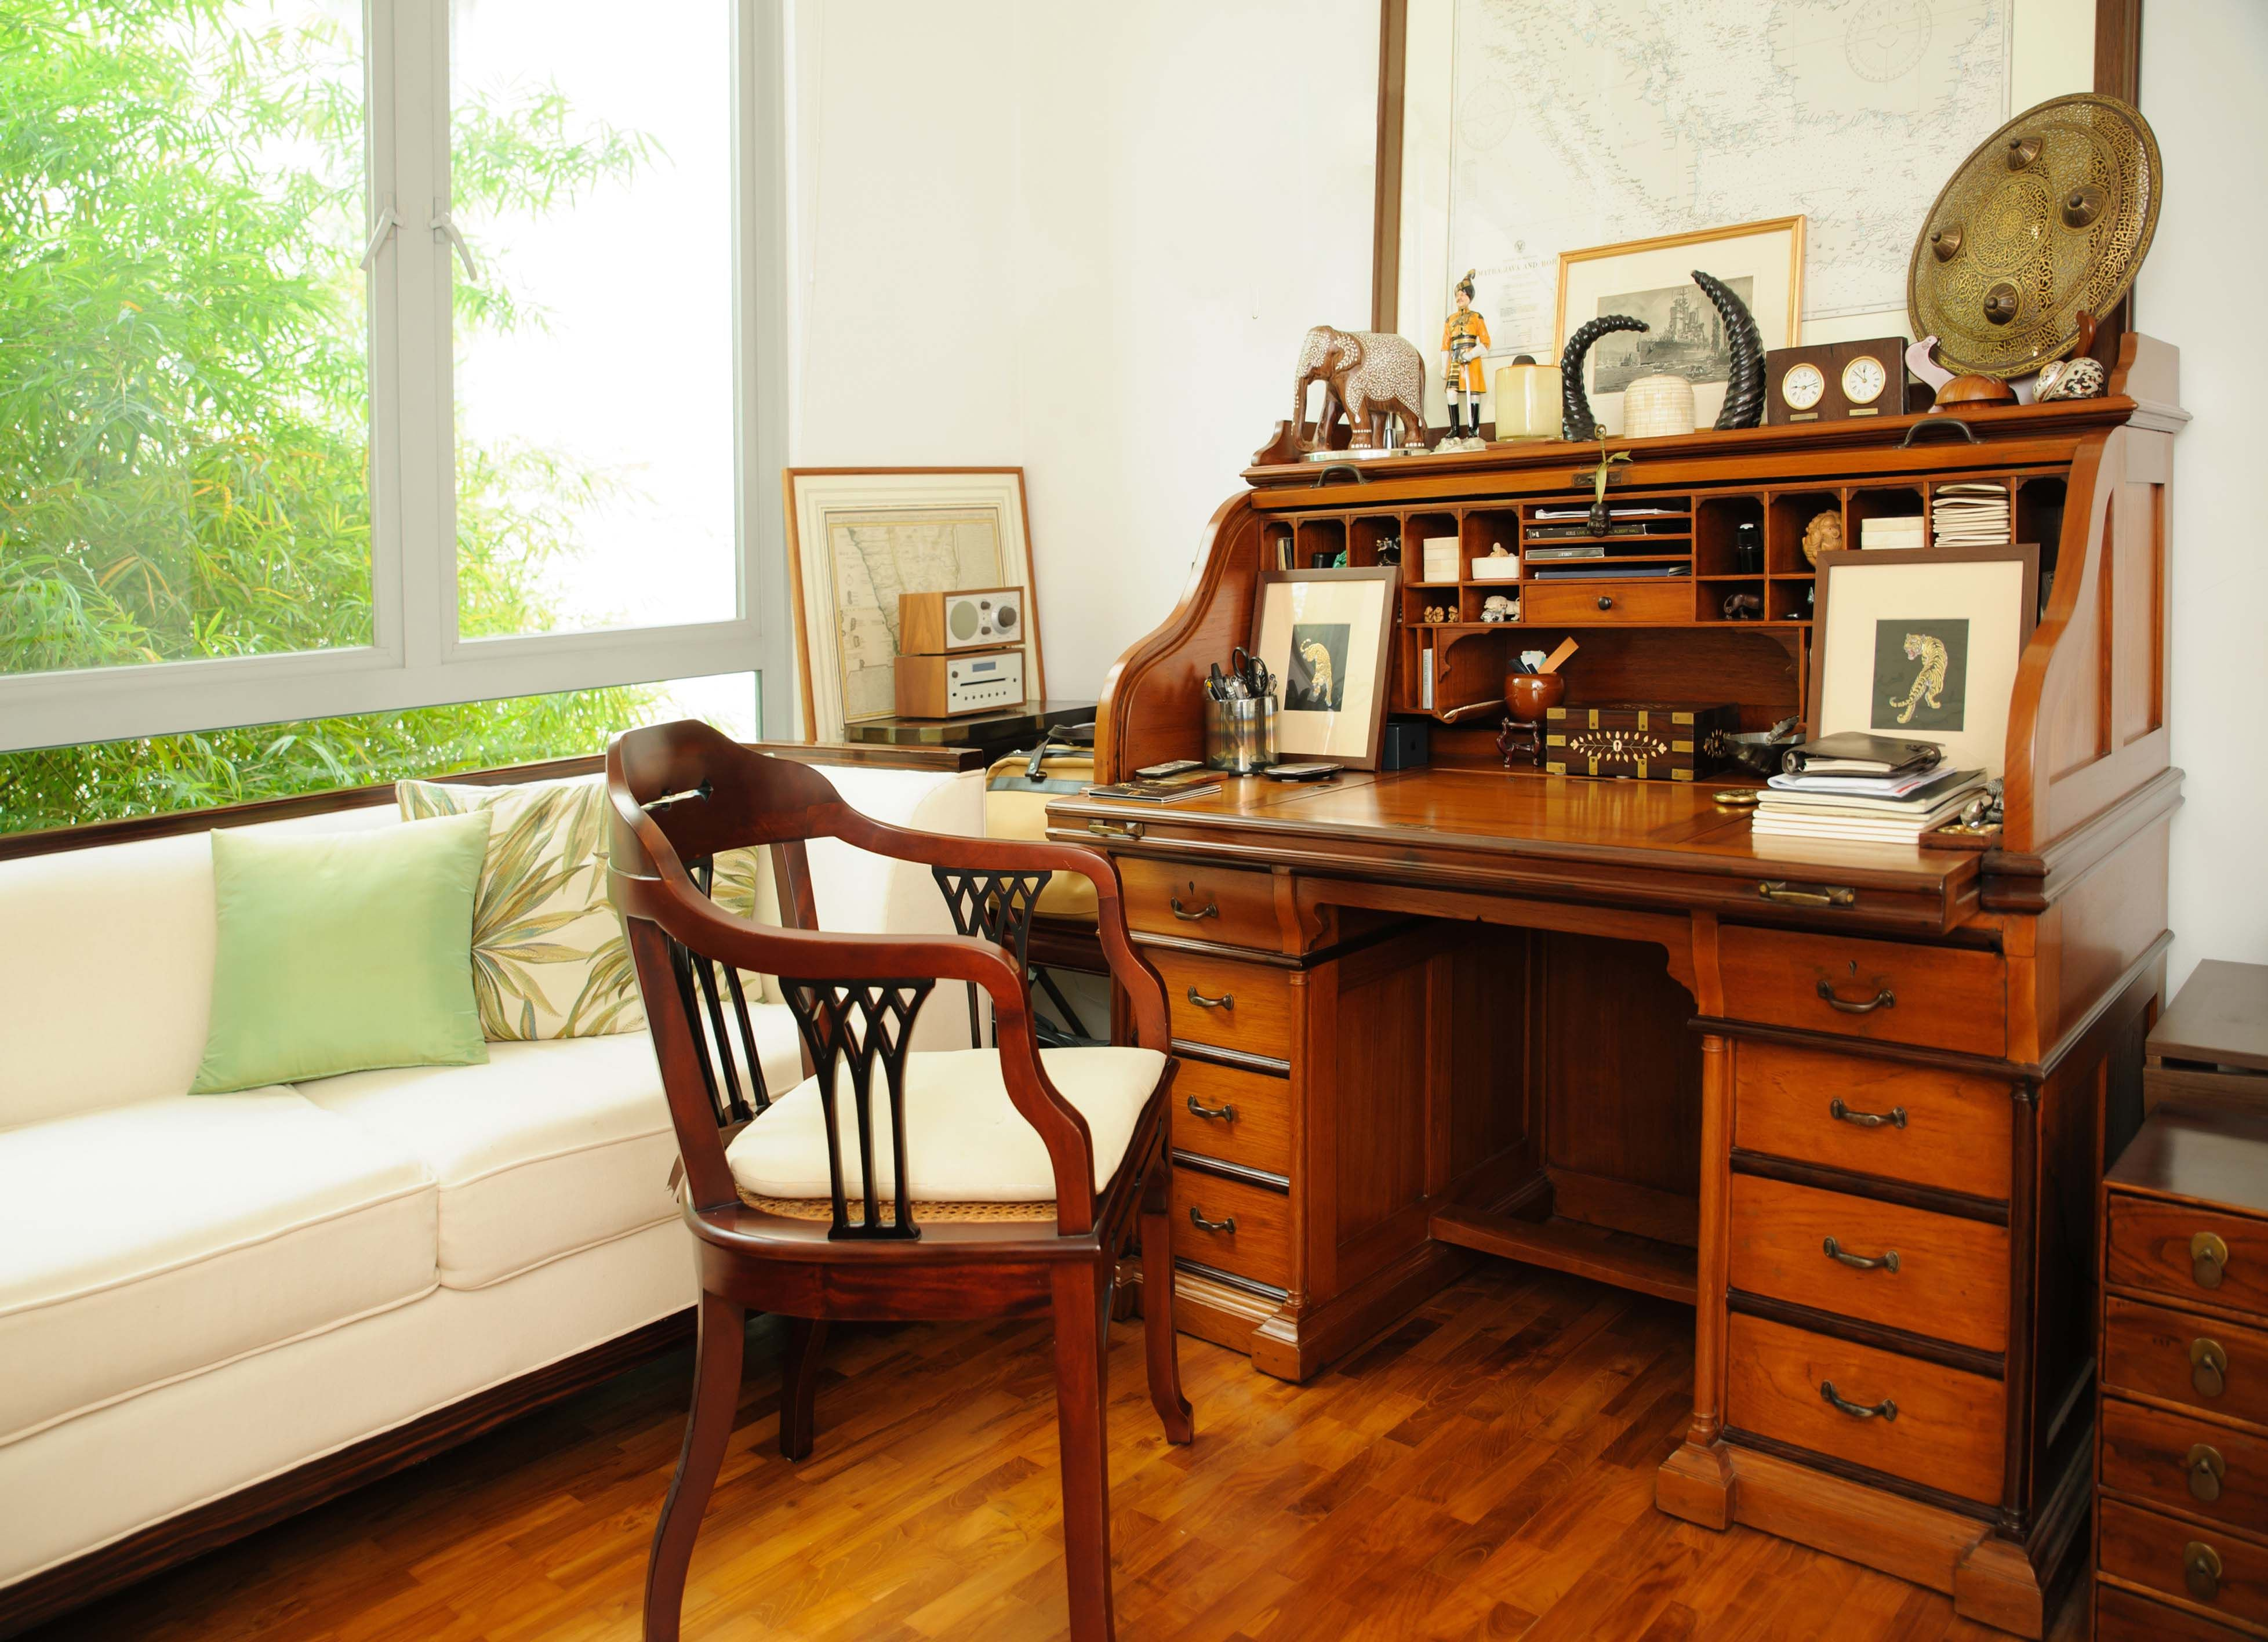 A Beautiful Antique British Colonial Roll Top Desk In Teakwood With Contrasting Details In Rosewood The Fitted Interior Roll Top Desk Home Colonial Furniture